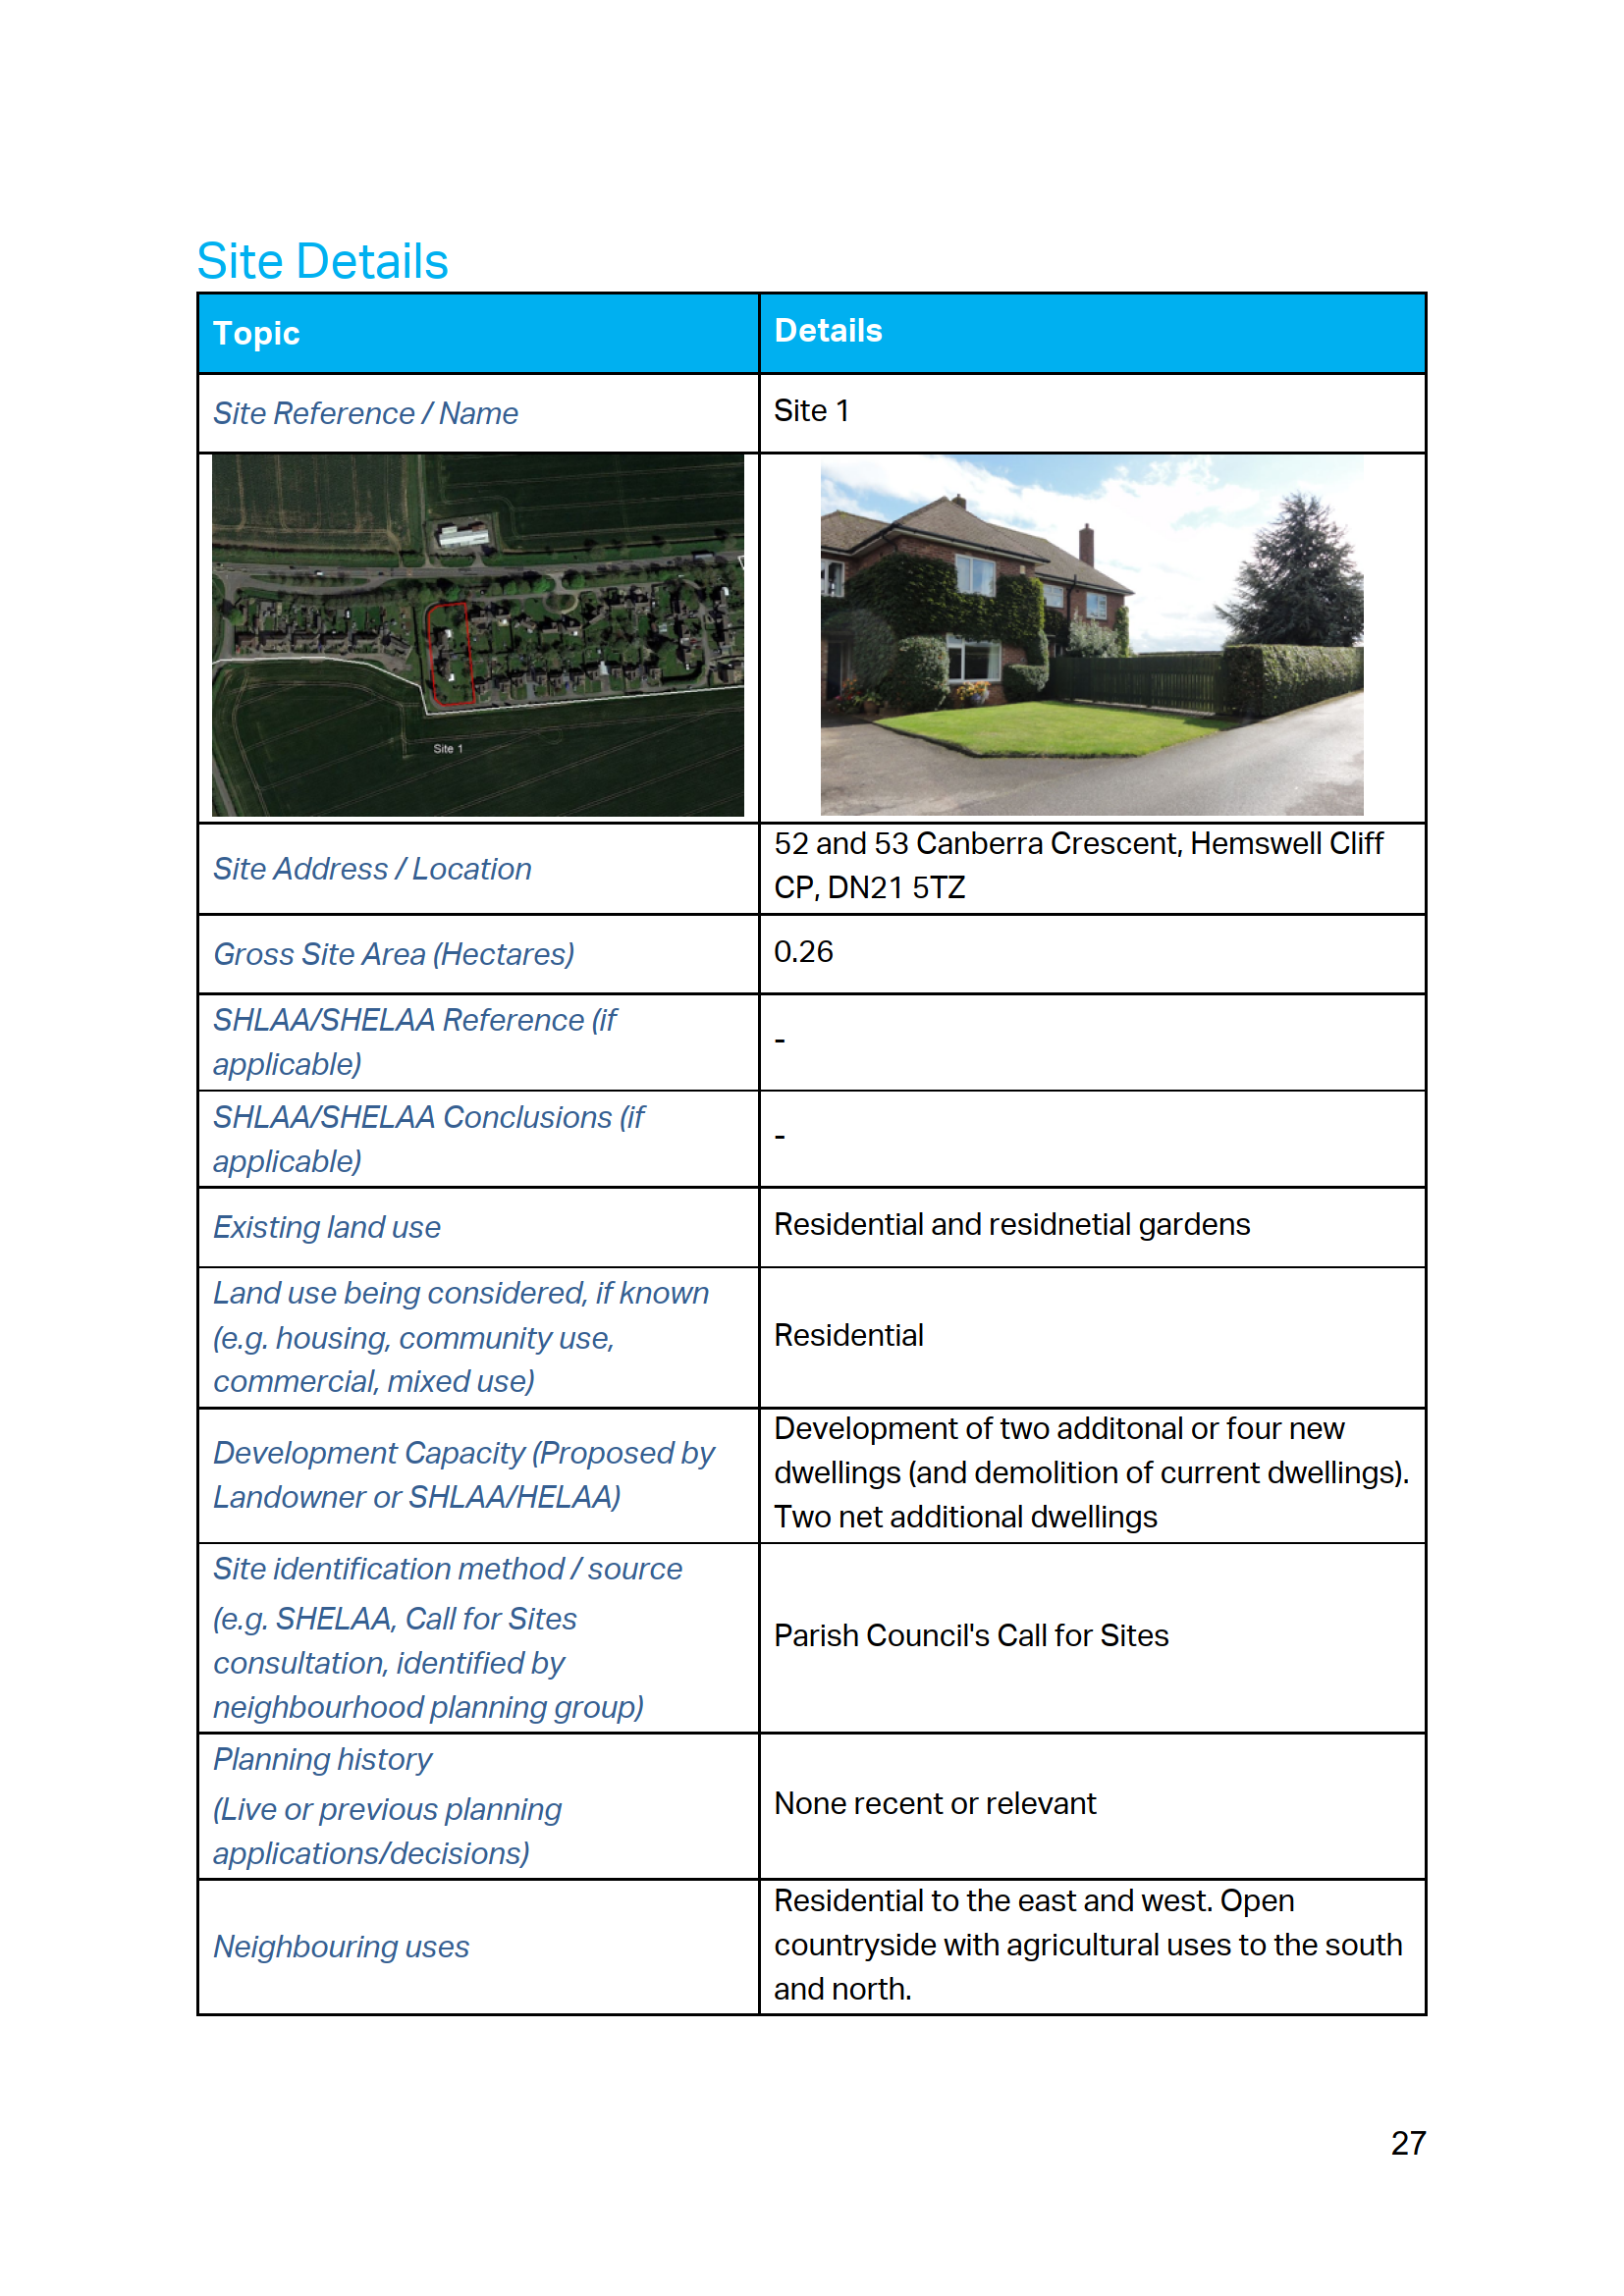 Hemswell_Cliff_Site_Options_and_Assessment_Final_041119-2_27.png